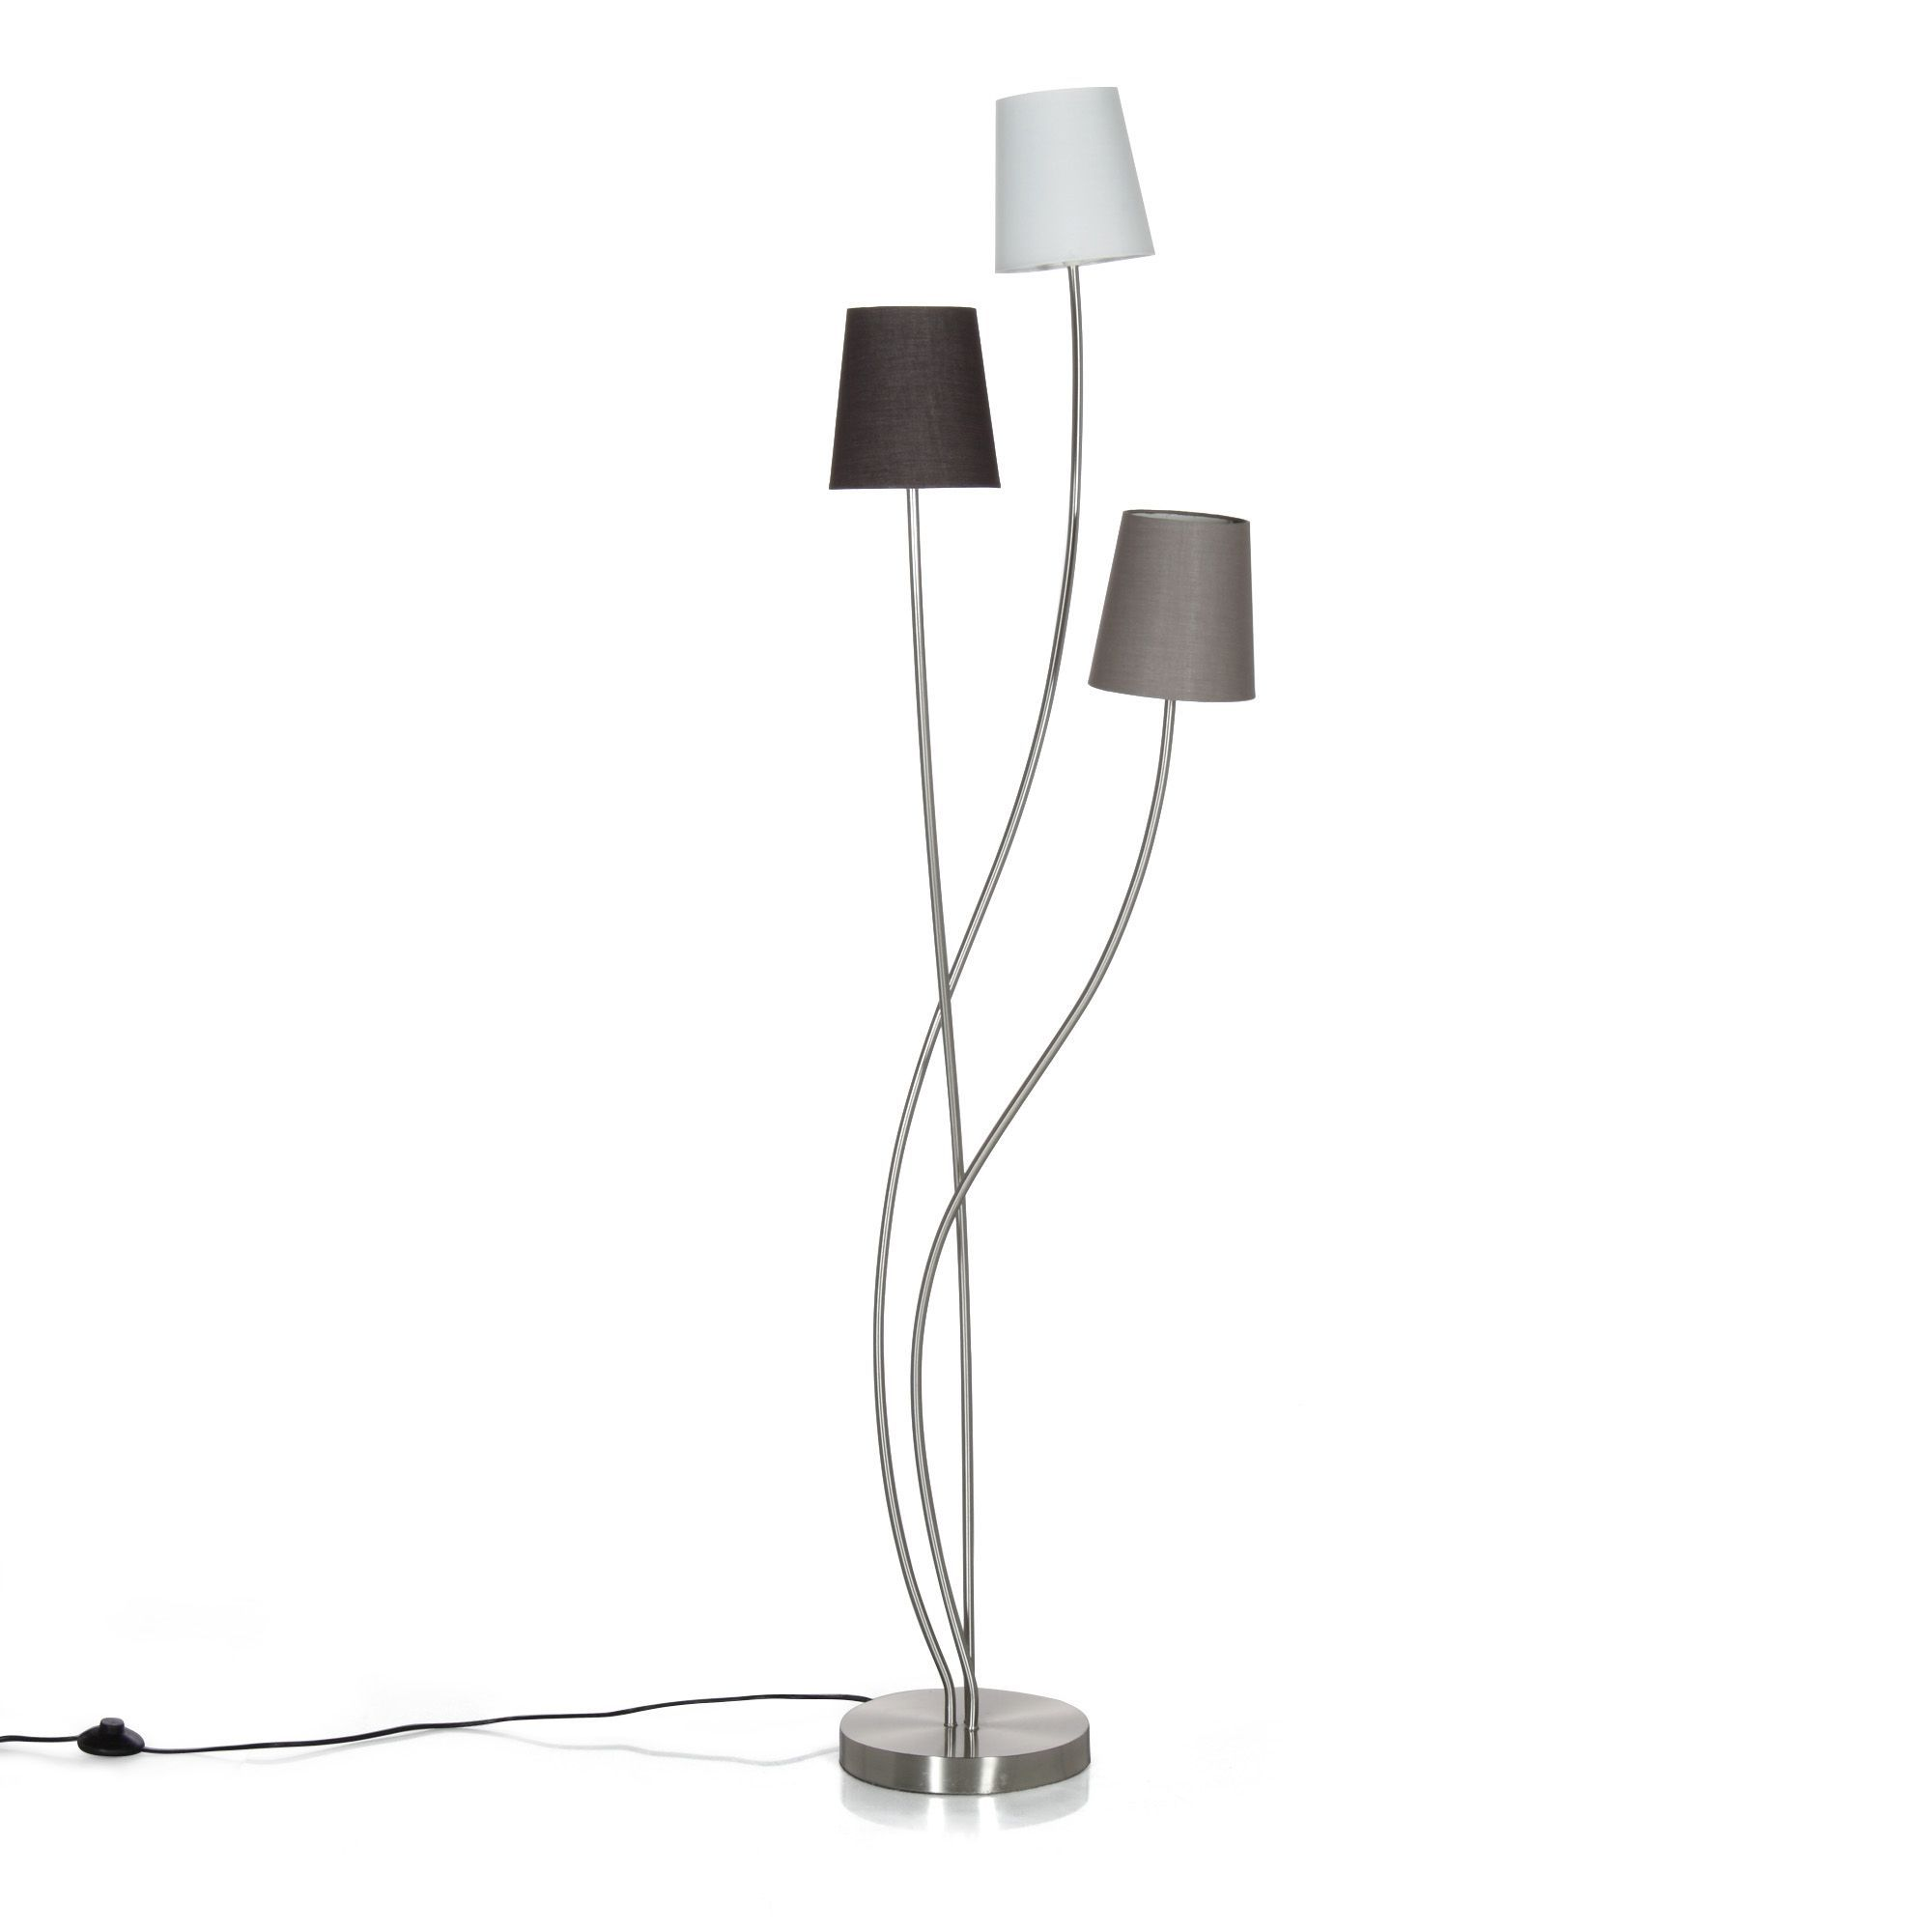 lampadaire lampadaire h165cm en acier gris beige sewal les lampadaires luminaires salon. Black Bedroom Furniture Sets. Home Design Ideas